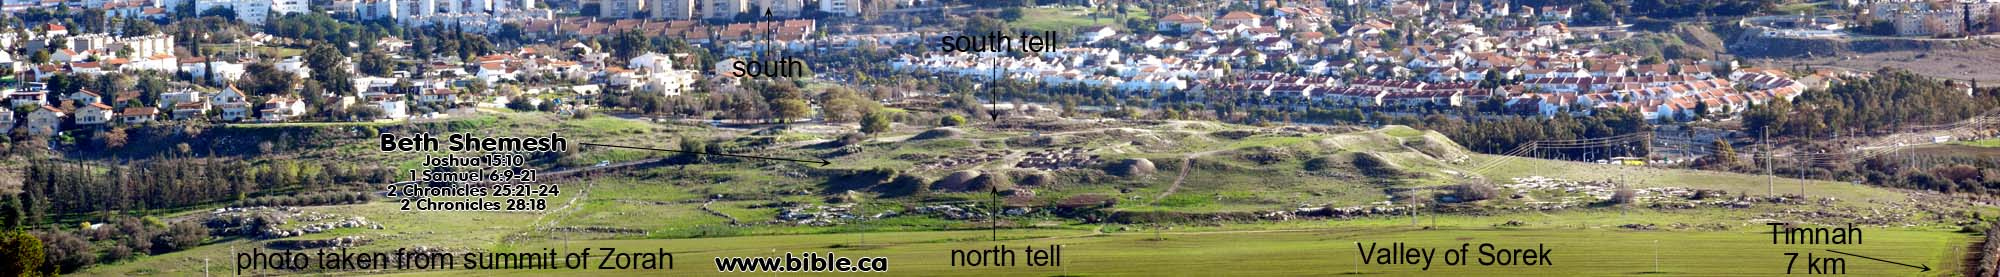 Beth Shemesh Bible Maps: Panorama Photos Of Ancient Israel From The Bible